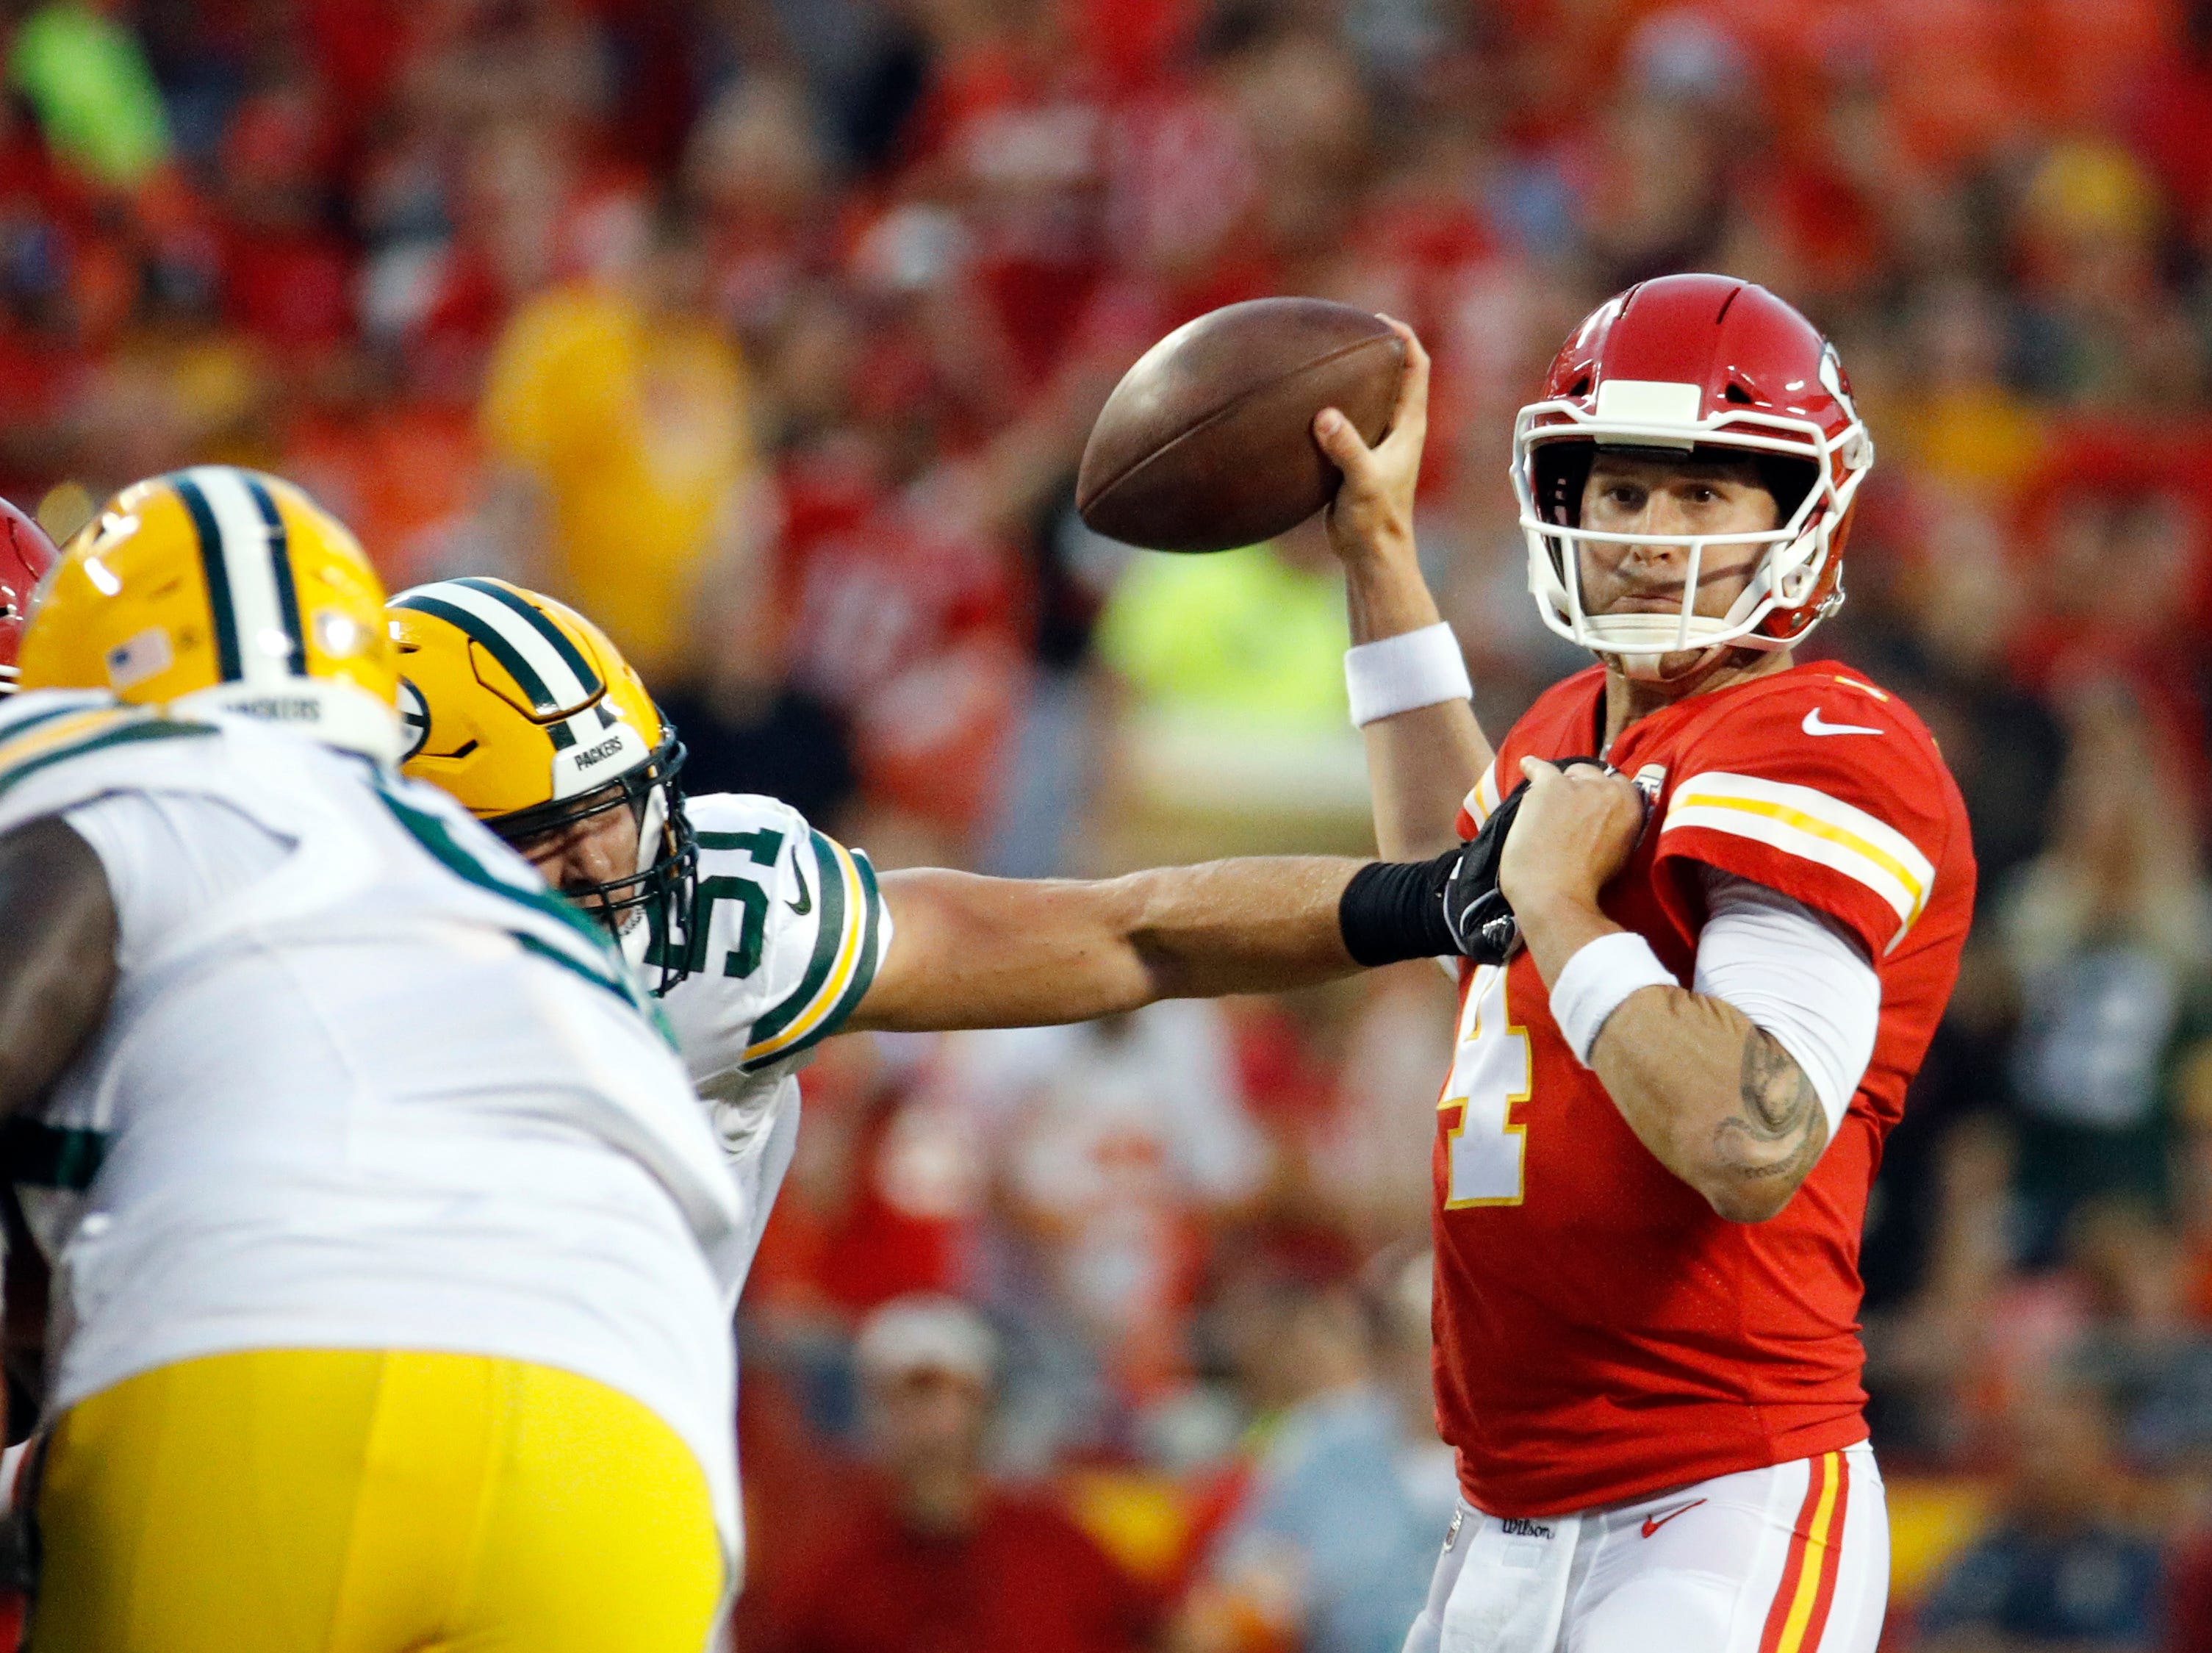 Kansas City Chiefs quarterback Chad Henne (4) throws under pressure from Green Bay Packers linebacker Kyler Fackrell (51) during the first half of an NFL preseason football game in Kansas City, Mo., Thursday, Aug. 30, 2018.